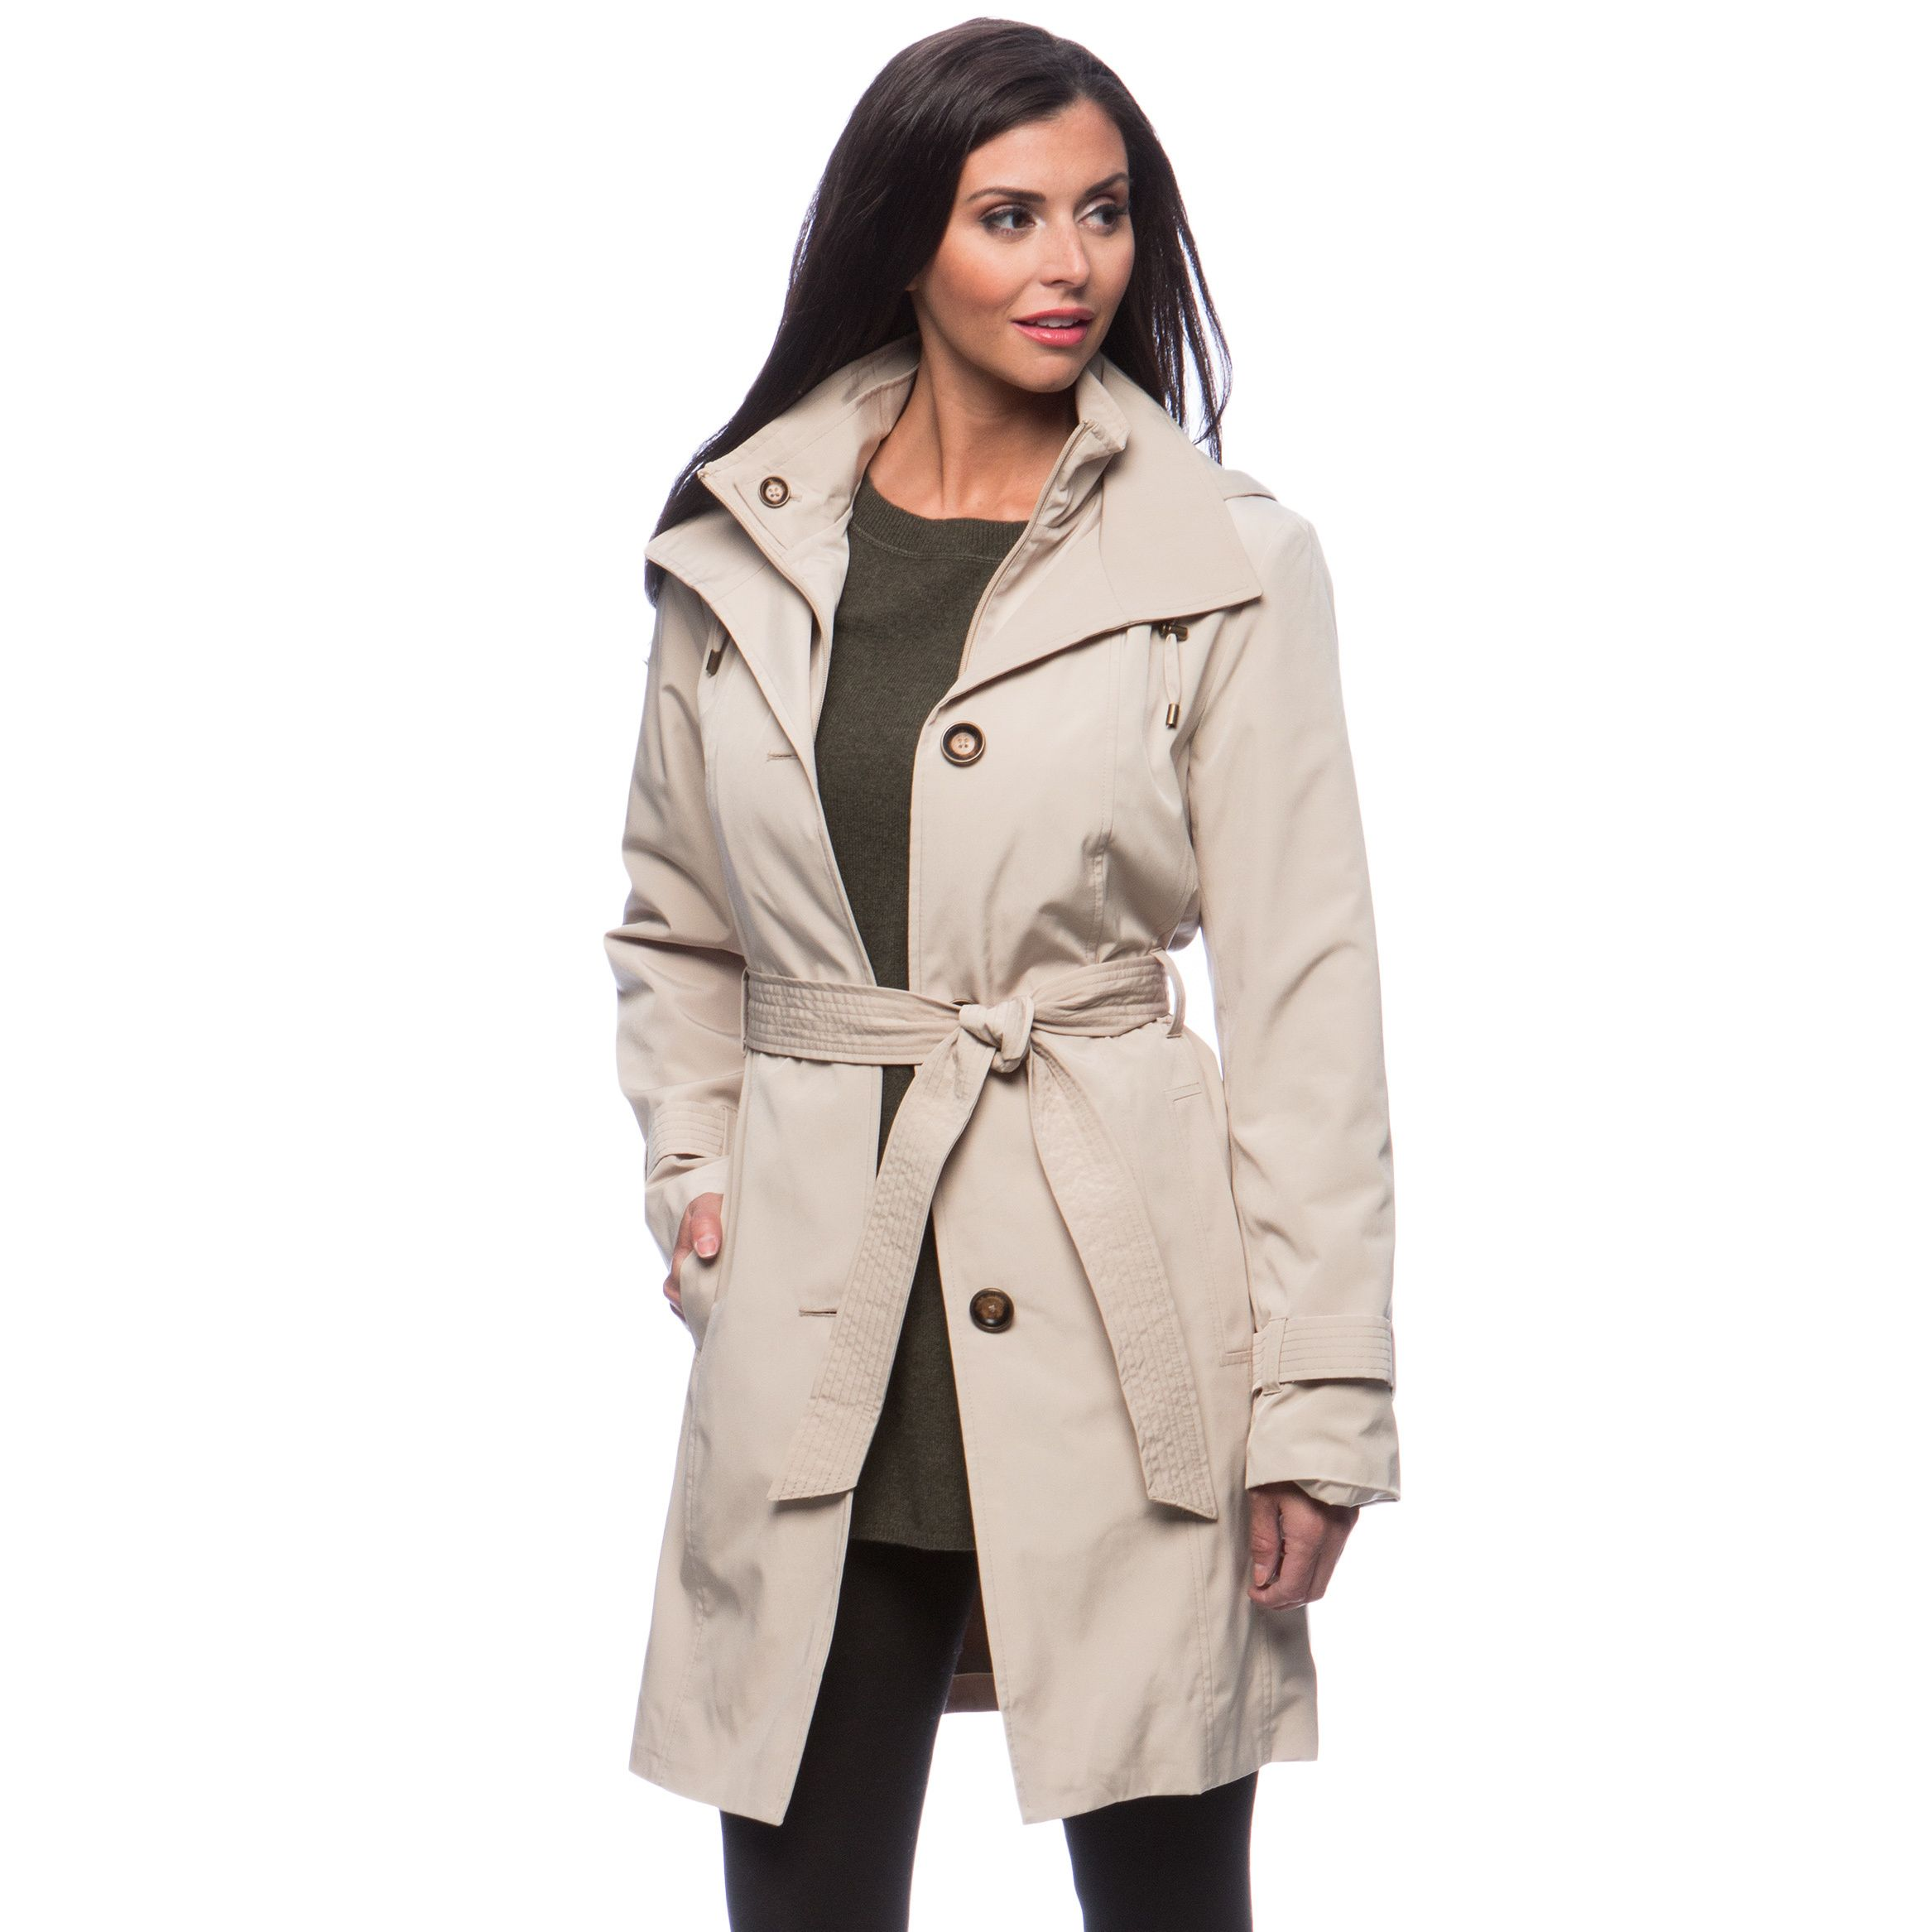 e3415e473 In a stylish natural stone color, this double collar women's coat ...